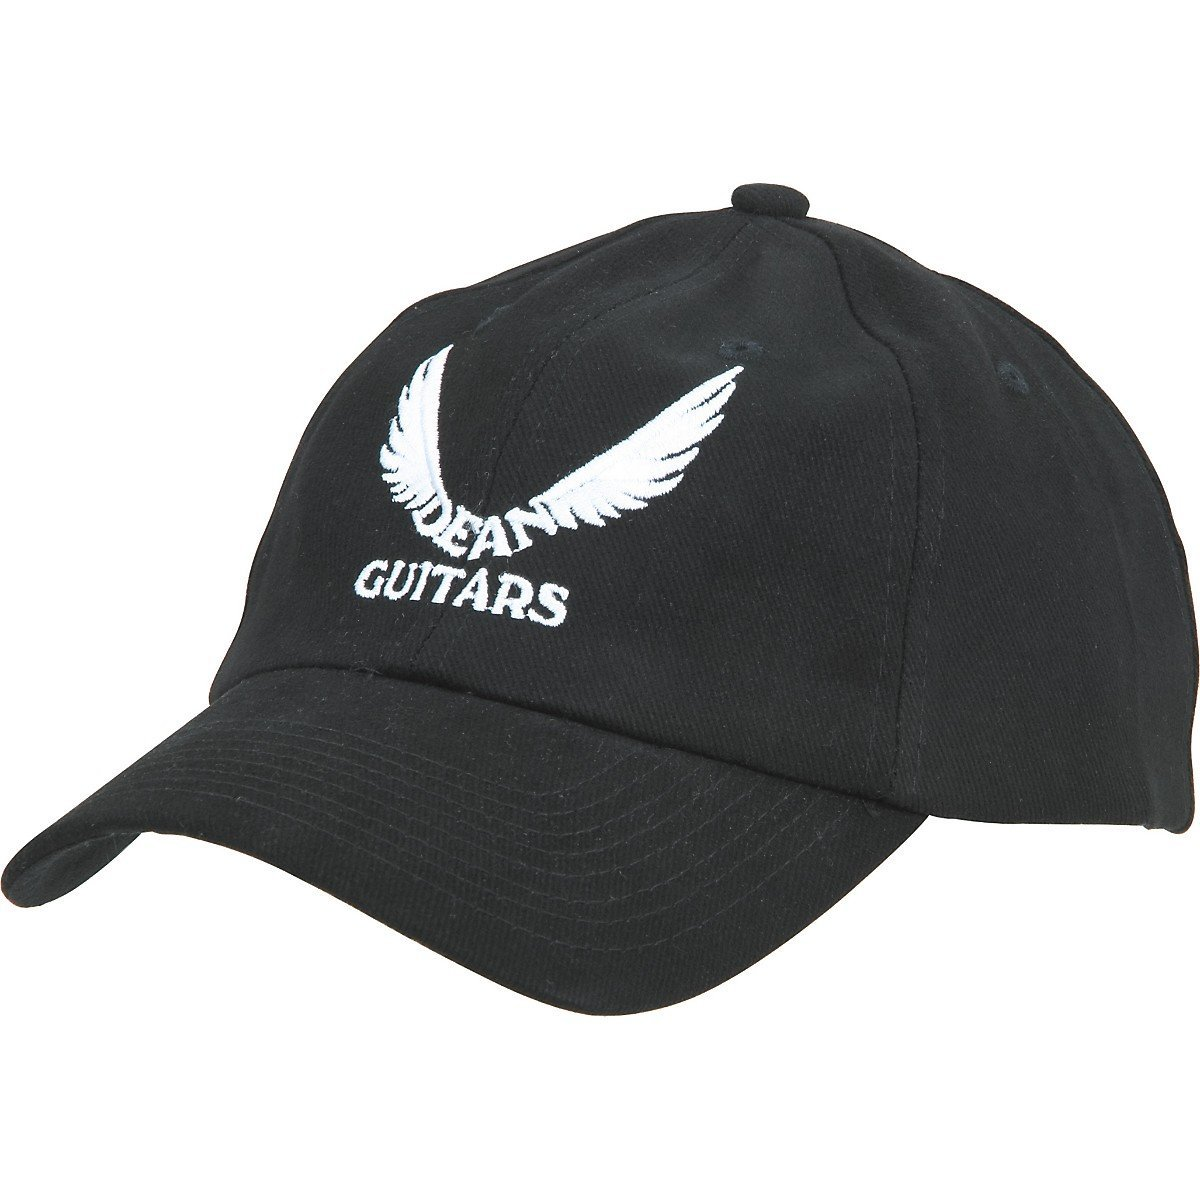 dean guitars hat dean guitars quotwingquot logo black hat